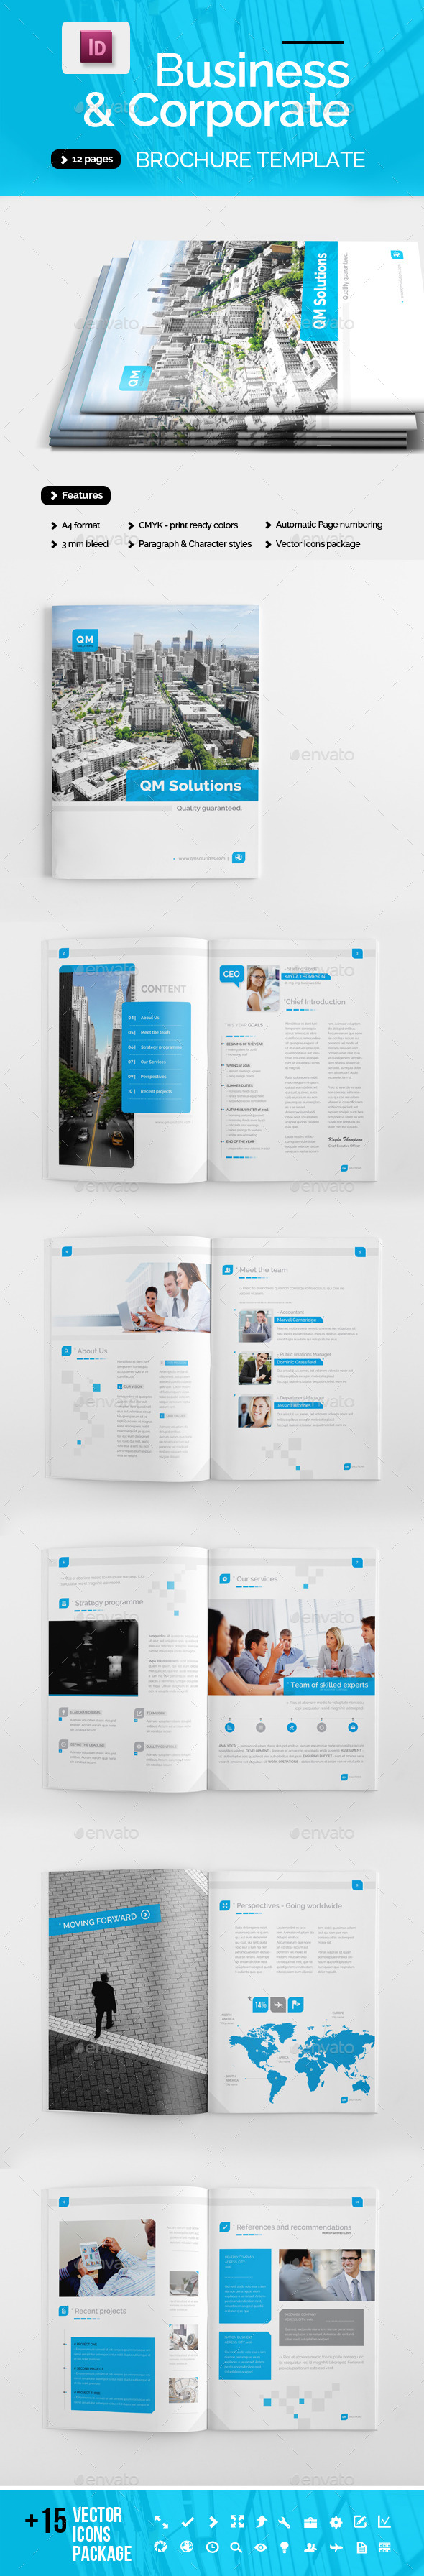 GraphicRiver Business & Corporate Brochure 11095743